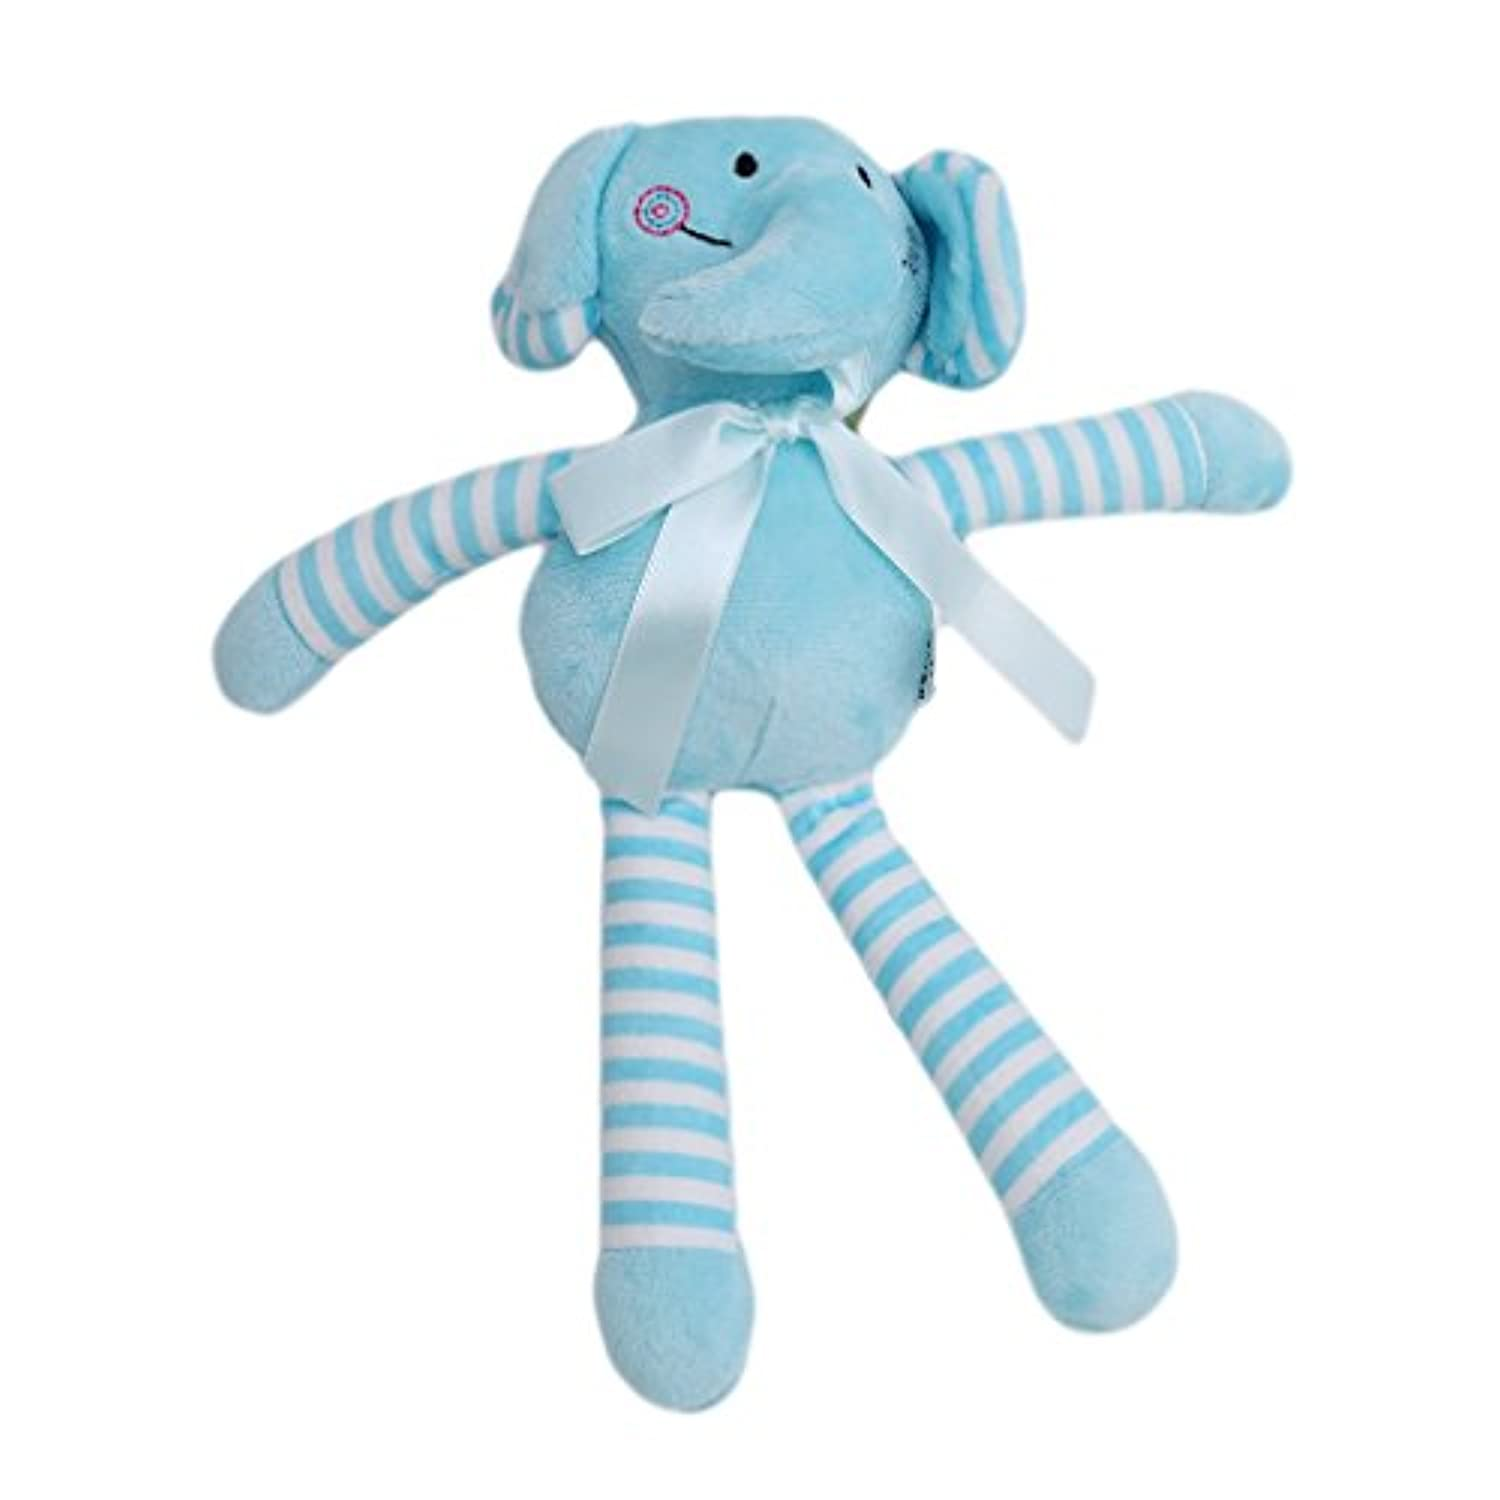 Guangqi Baby Plush Toy、ベビーSoothed Animal Dolls for Baby Sleep 10.24*3.54in 25